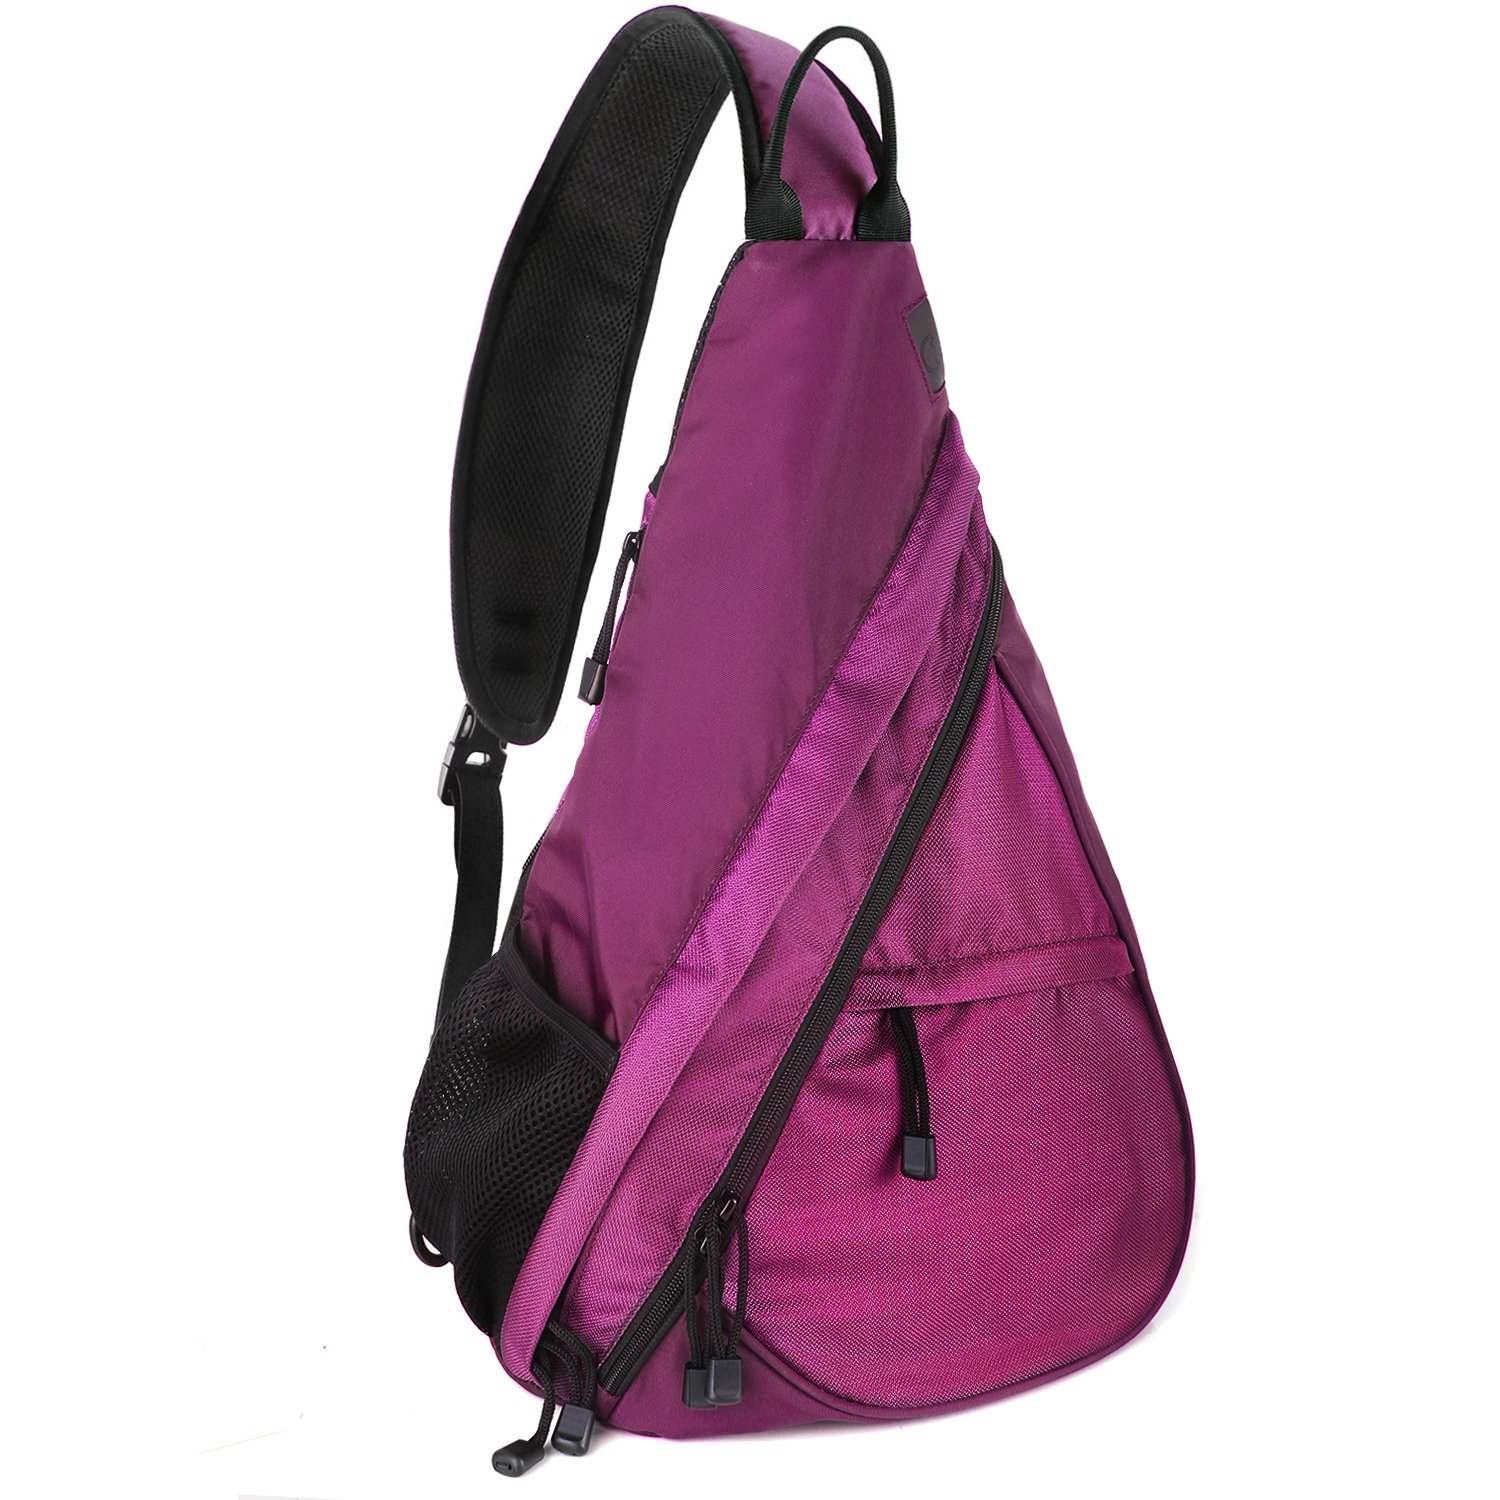 657bfaa030 Amazon.com  Unigear Sling Bag Backpack Shoulder Crossbody Bag Chest  Pack-Medium Water Resistant Travel Backpack for Men Women (Purple)  Sports    Outdoors